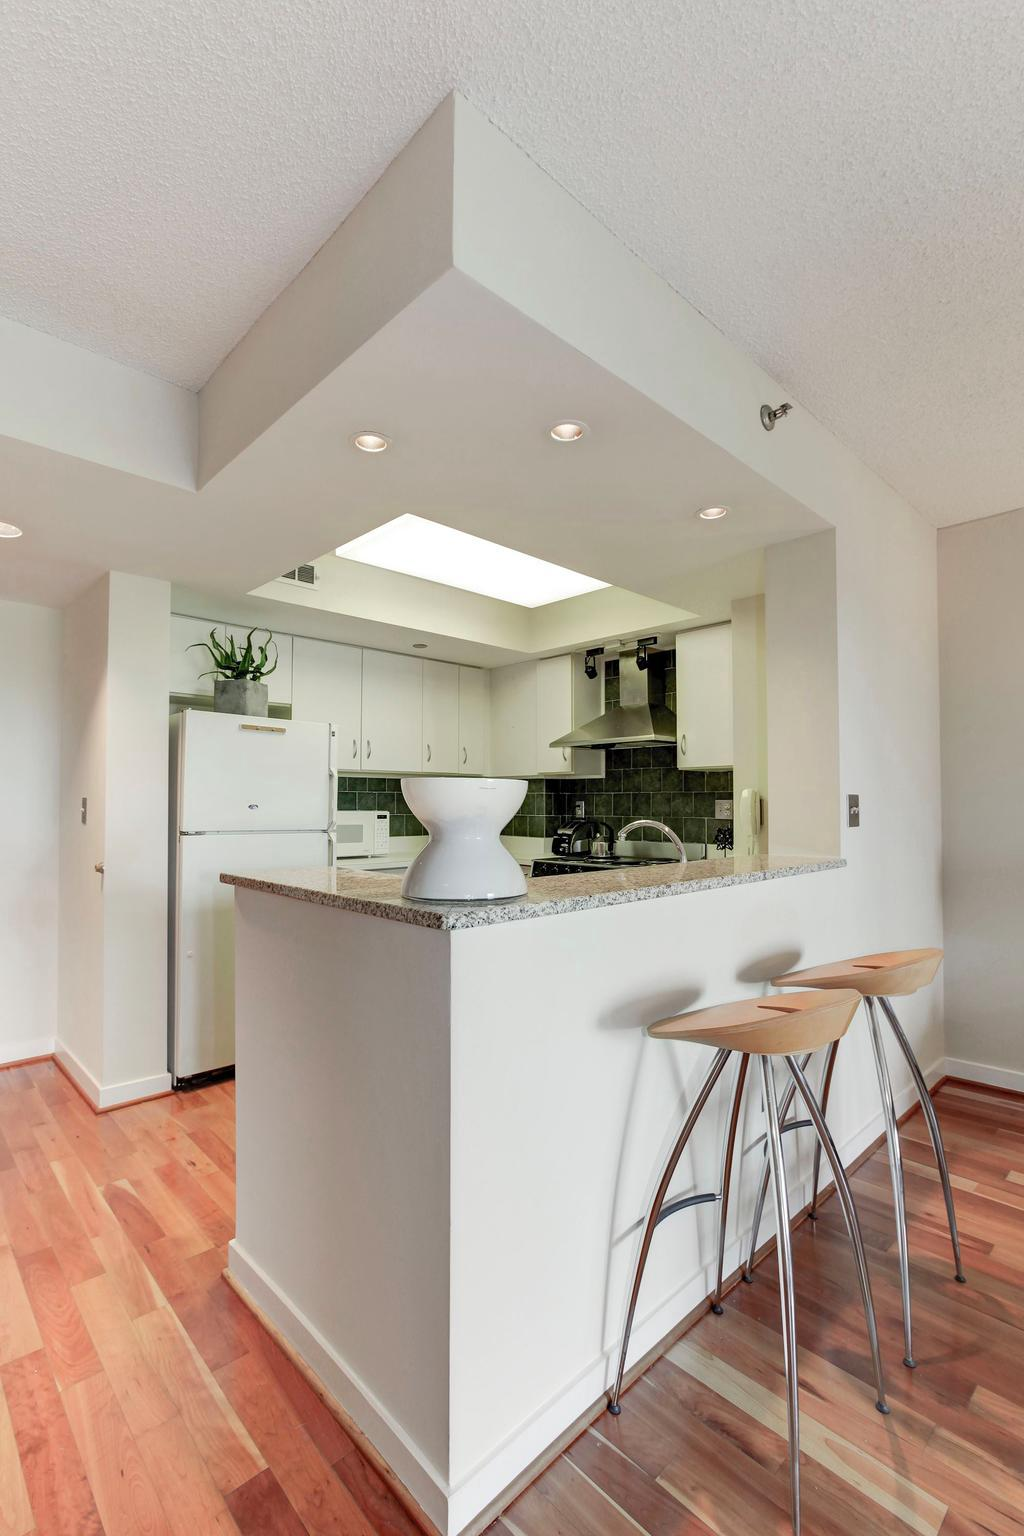 Additional photo for property listing at 1275 25th St NW #604 Washington, District Of Columbia 20037 United States